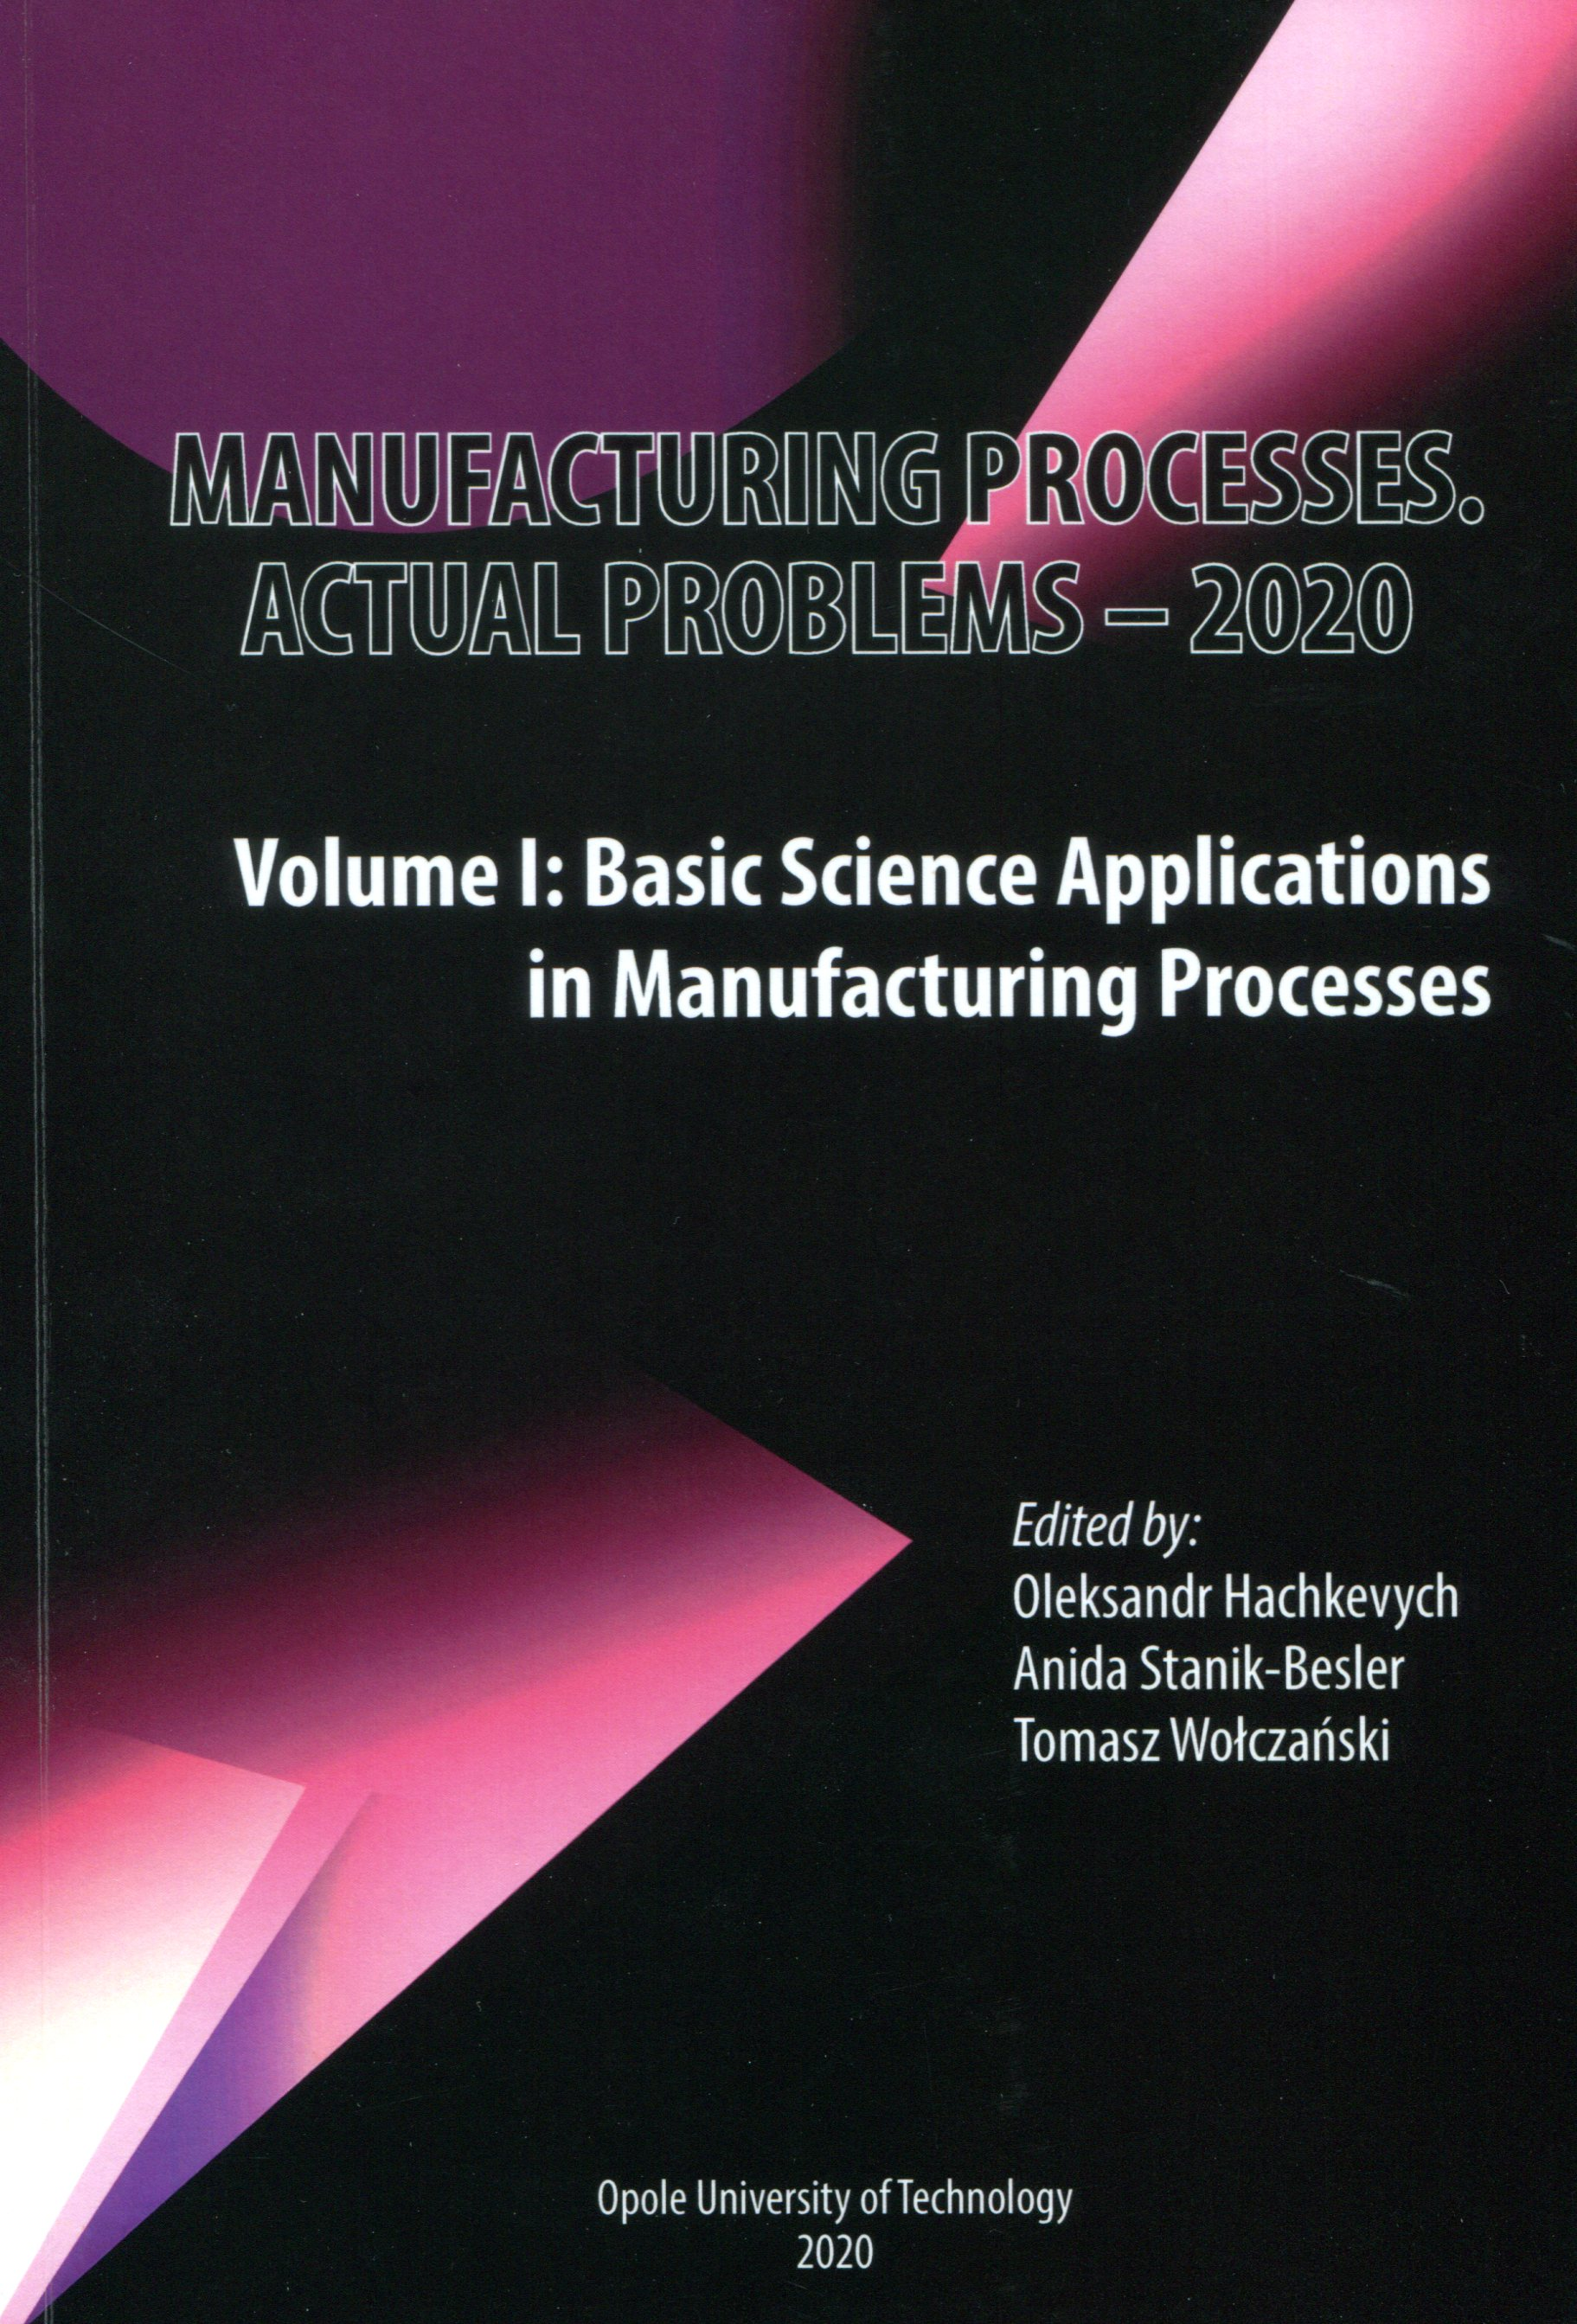 Manufacturing processes : actual problems - 2020. Vol. 1, Basic science applications in manufacturing processes = T. 1, Aplikacje nauk podstawowych w procesach wytwórczych